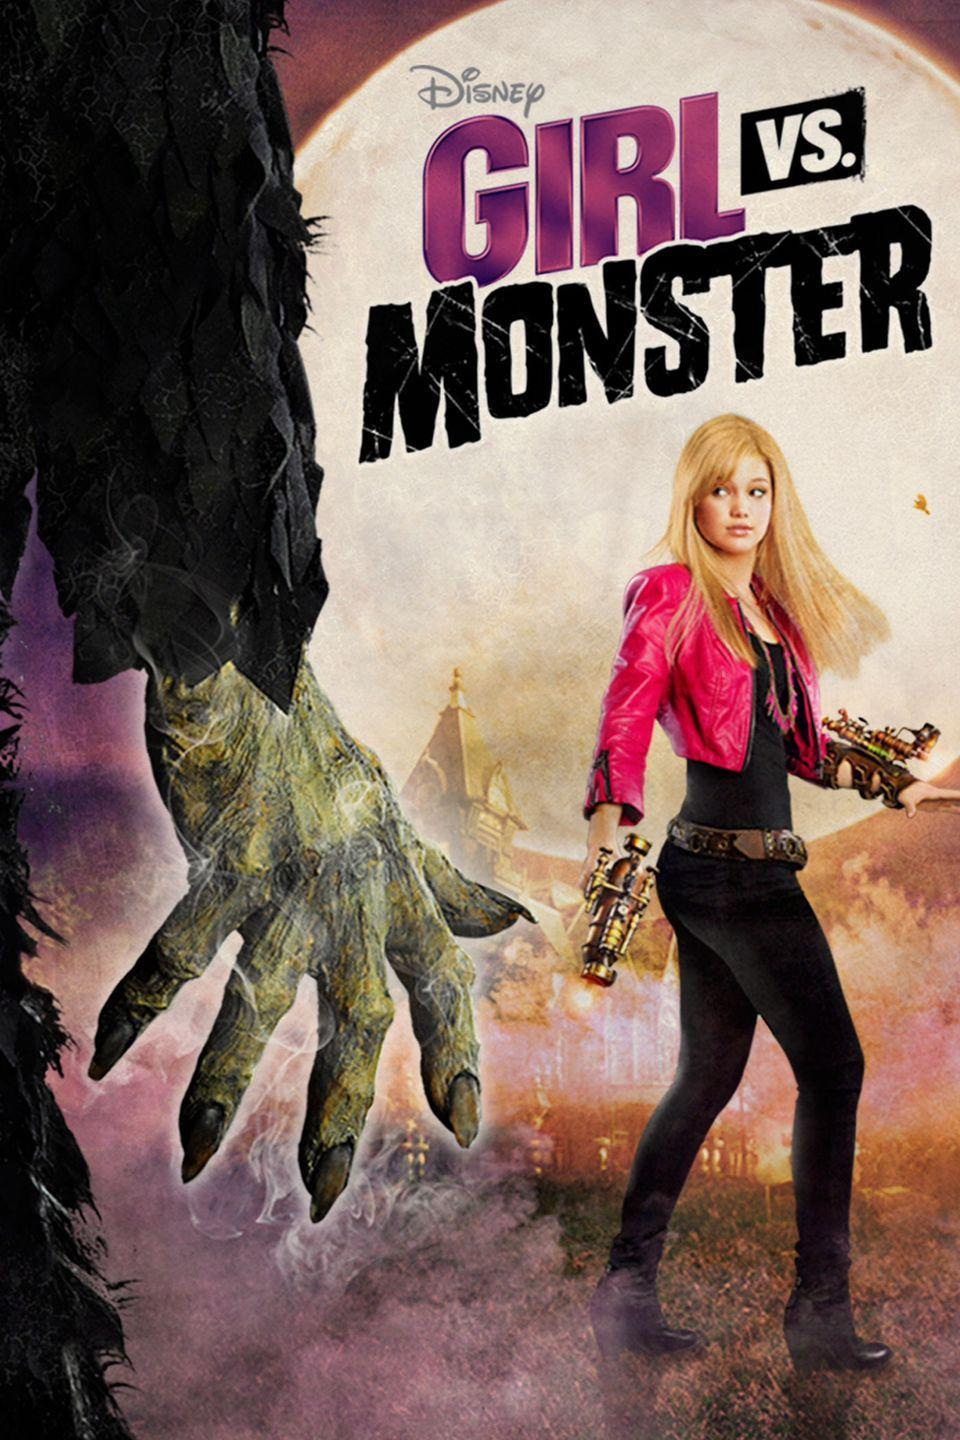 <p>Aspiring singer Skylar sneaks out of her parent's home to attend a Halloween Bash with her besties. When she disables her family's alarm system, she unleashes a monster that preys on the fear of her family, who she later finds are 5th generation, monster hunters.</p>